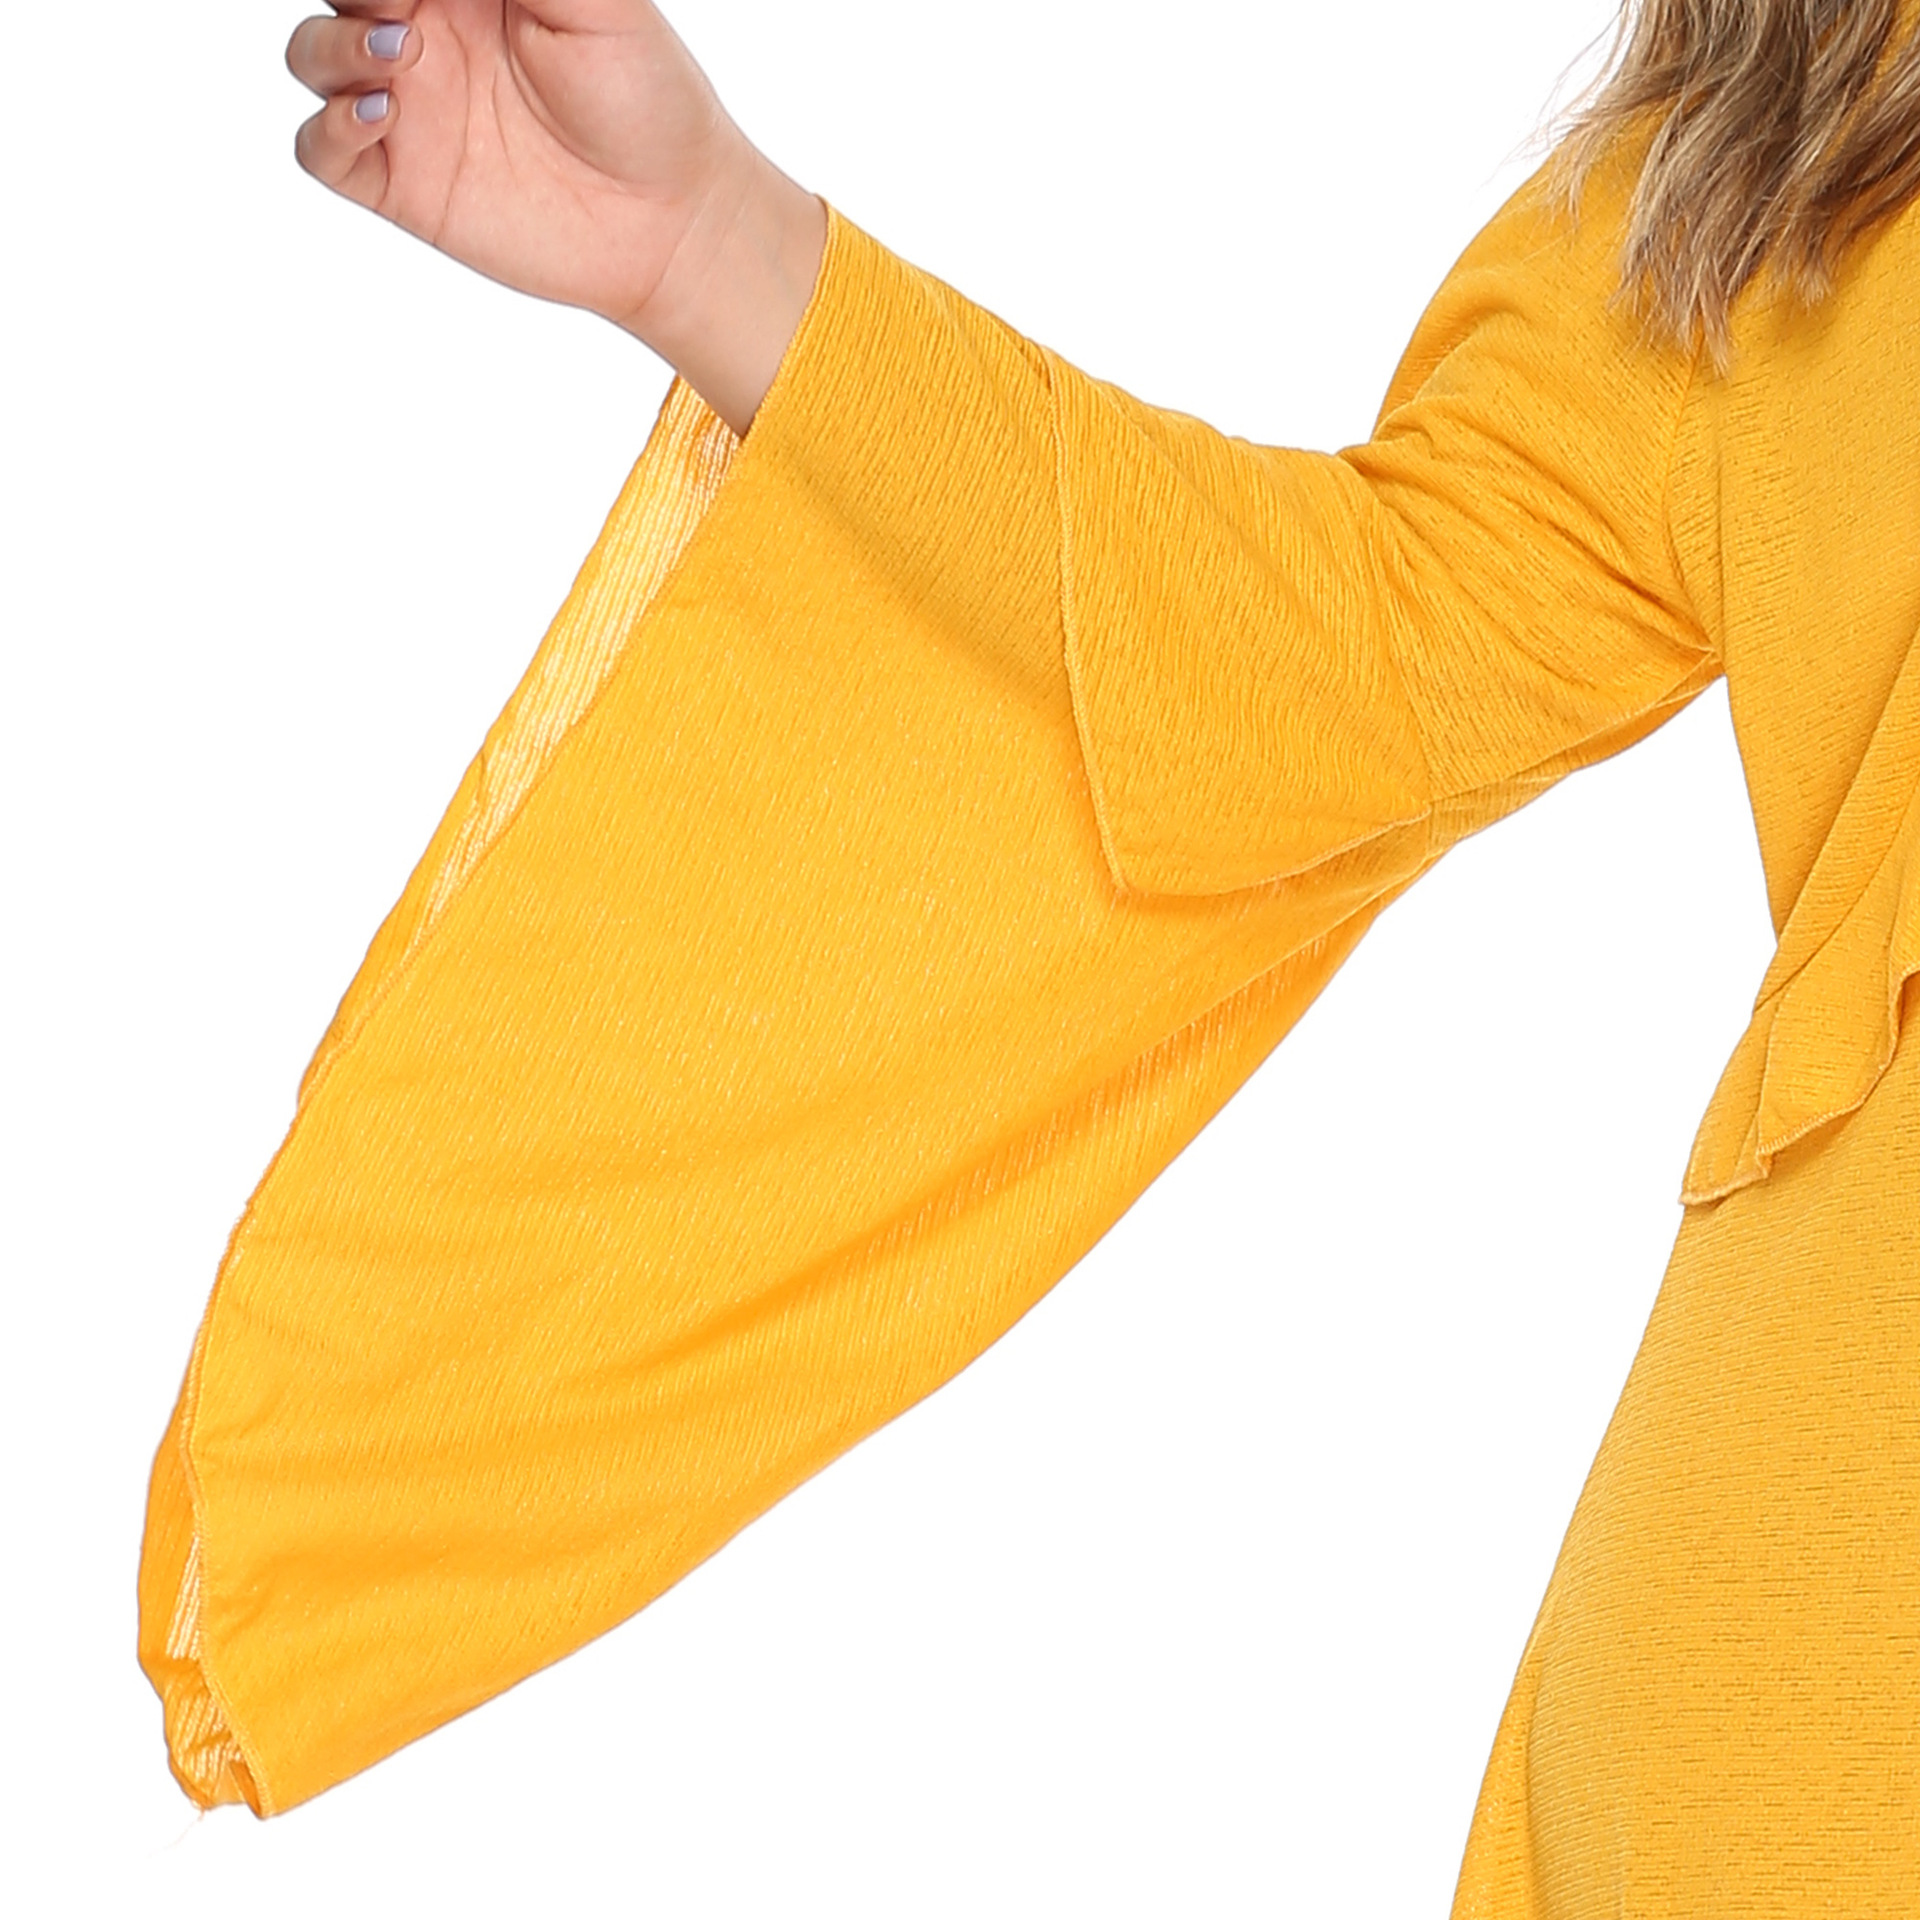 PGSD Summer casual big size trumpet sleeve auricular edge loose solid color Mid length dress female yellow women clothes 4XL in Dresses from Women 39 s Clothing